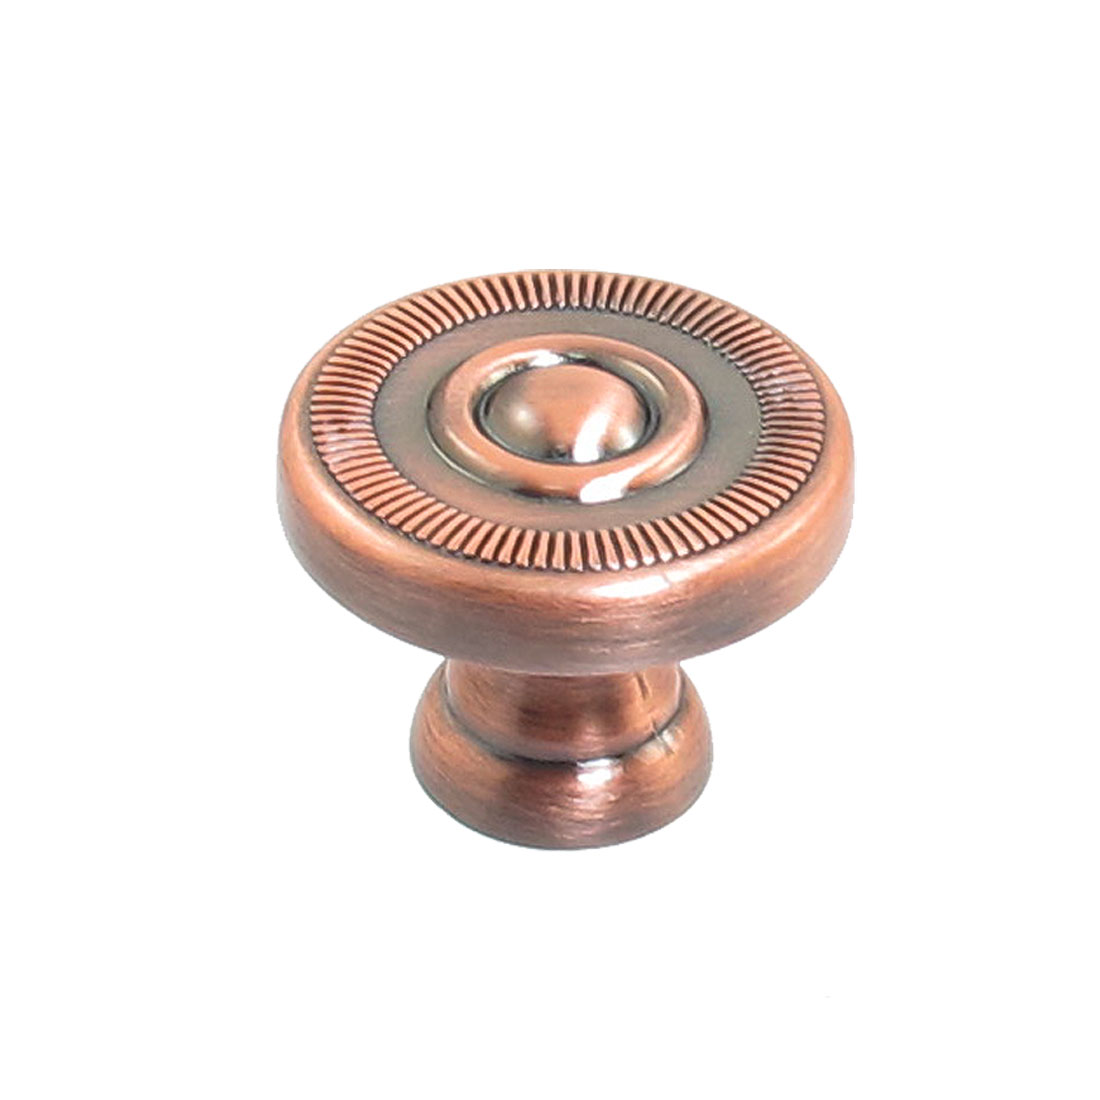 "Furniture Cabinet Copper Tone 2.5cm 1"" Dia Metal Round Pull Knob"